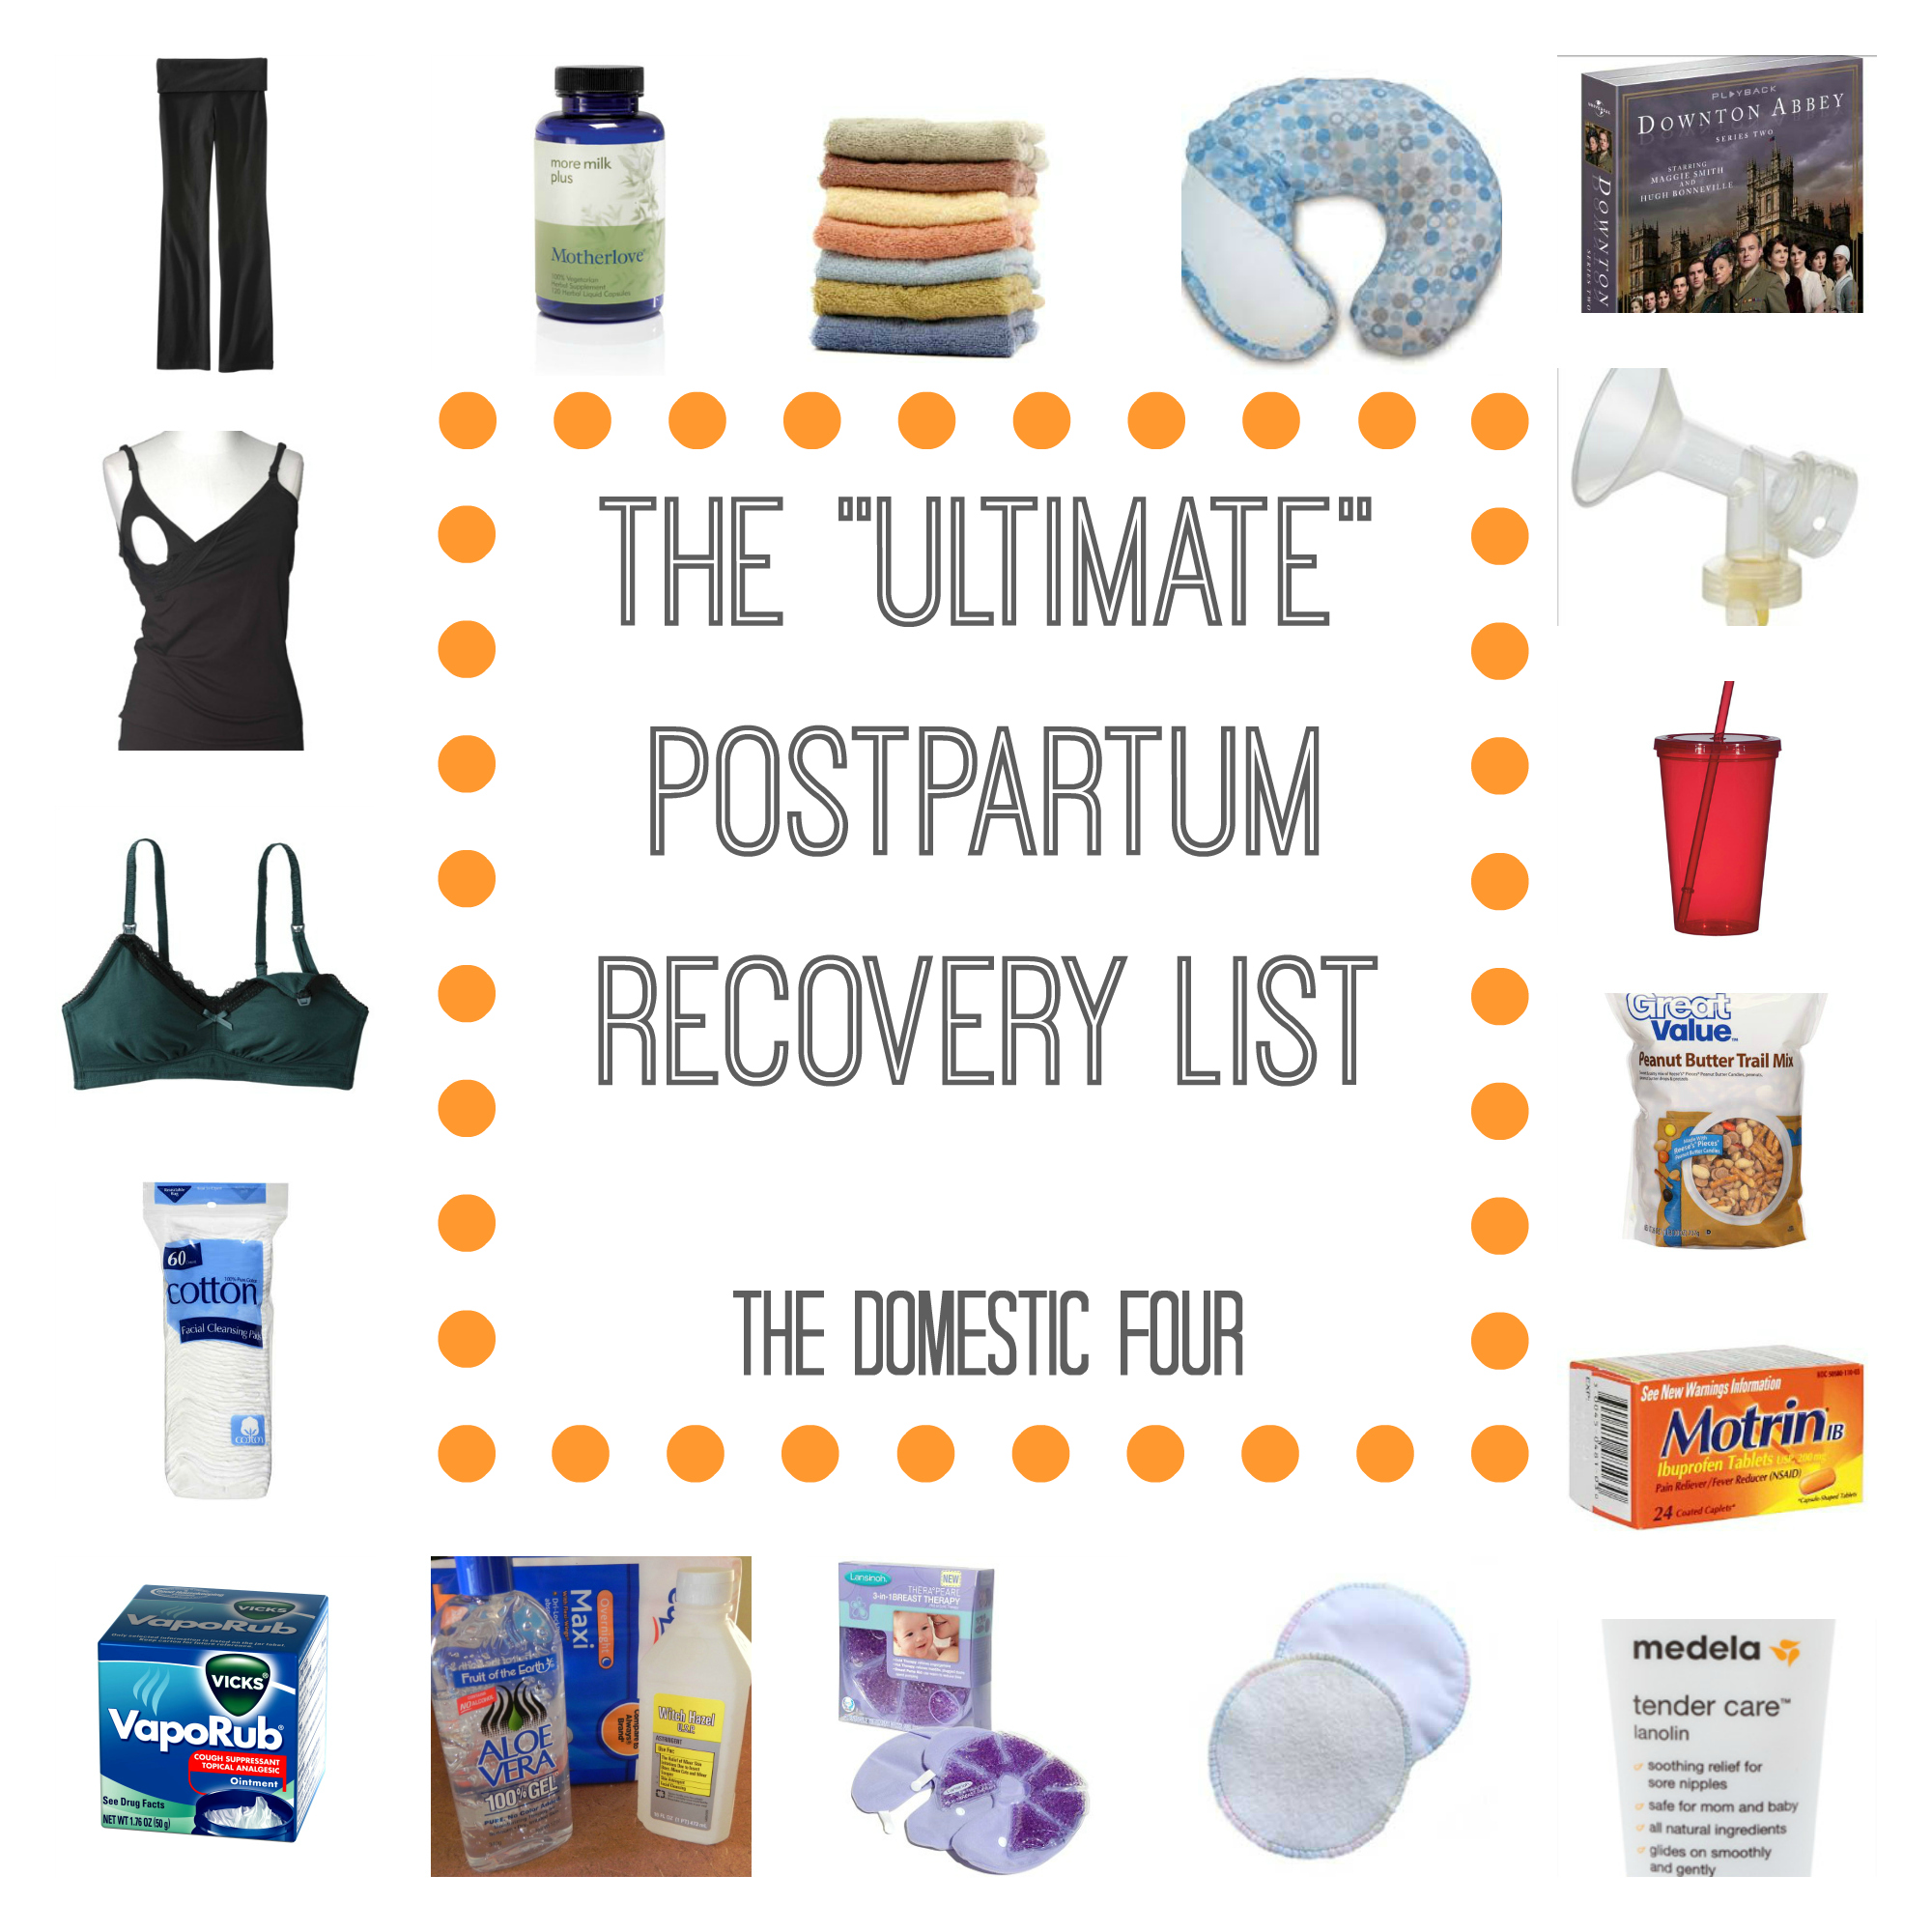 The ultimate postpartum recovery list!